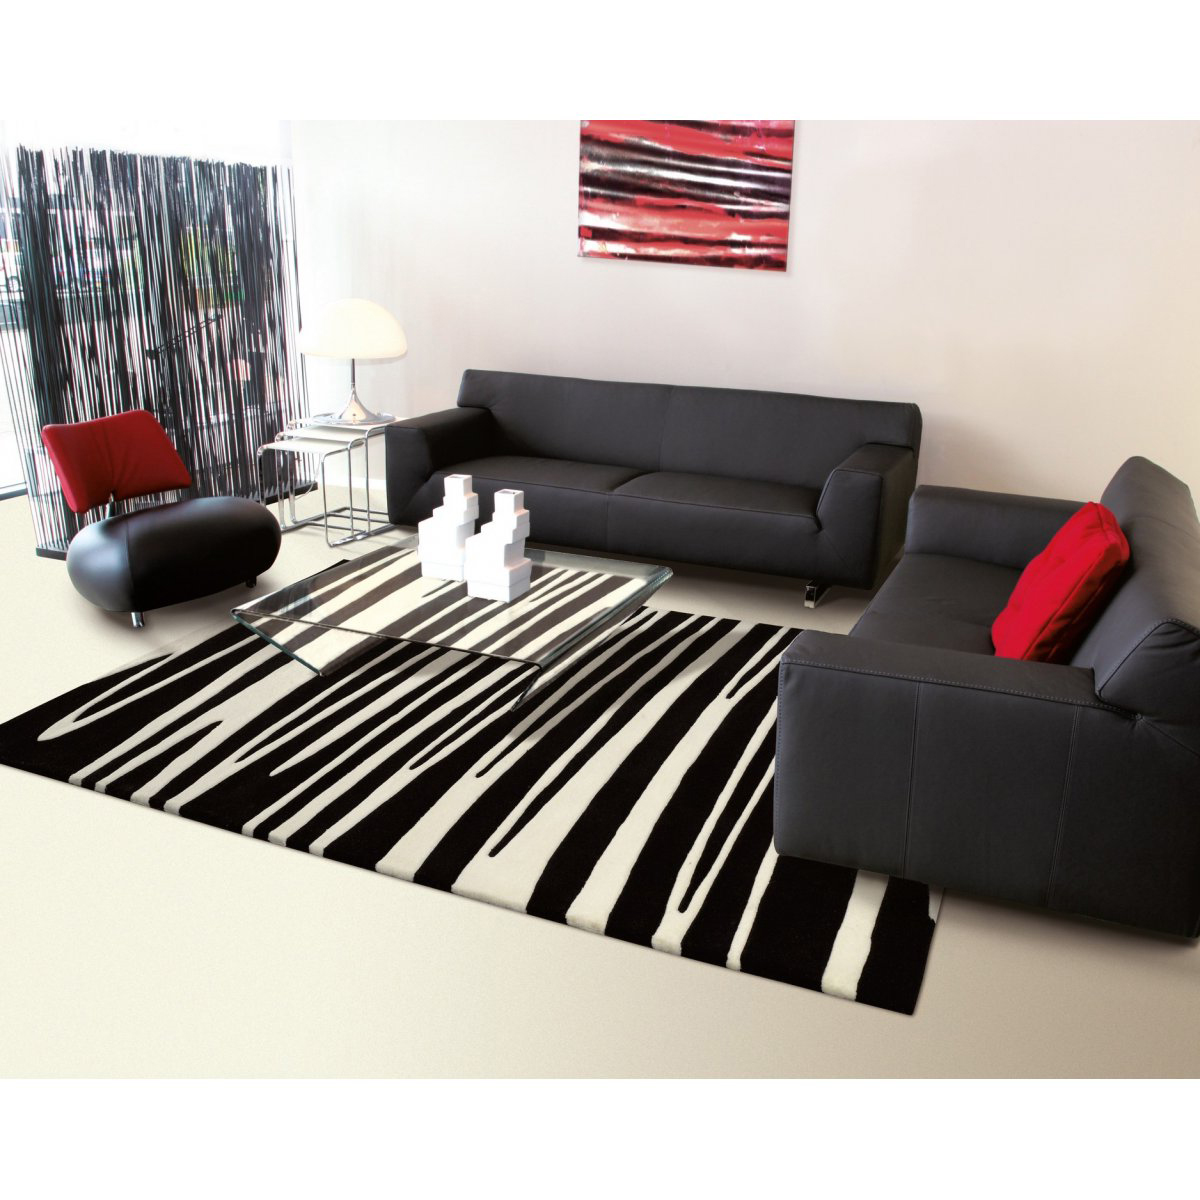 tapis design pas cher 13 id es de d coration int rieure. Black Bedroom Furniture Sets. Home Design Ideas